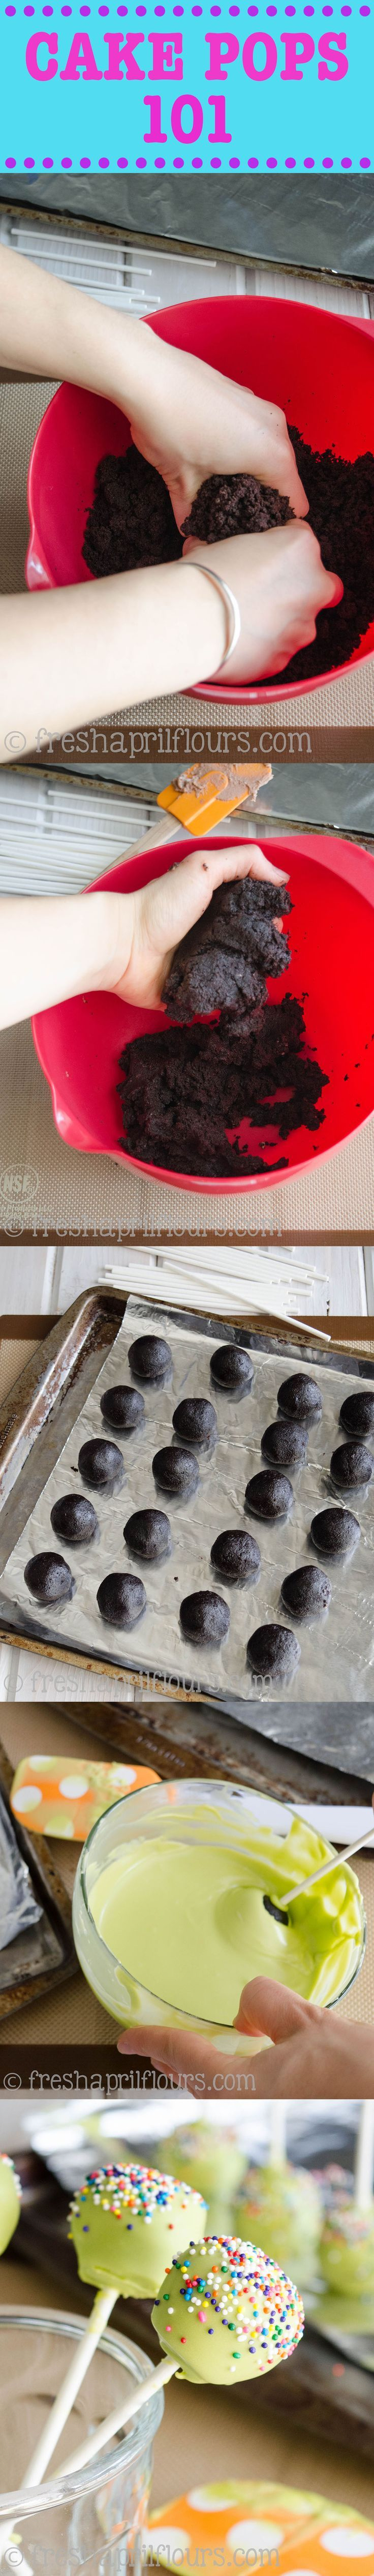 Cake Pops 101: Learn how to make cake pops with step-by-step photos, tricks, and troubleshooting tips.